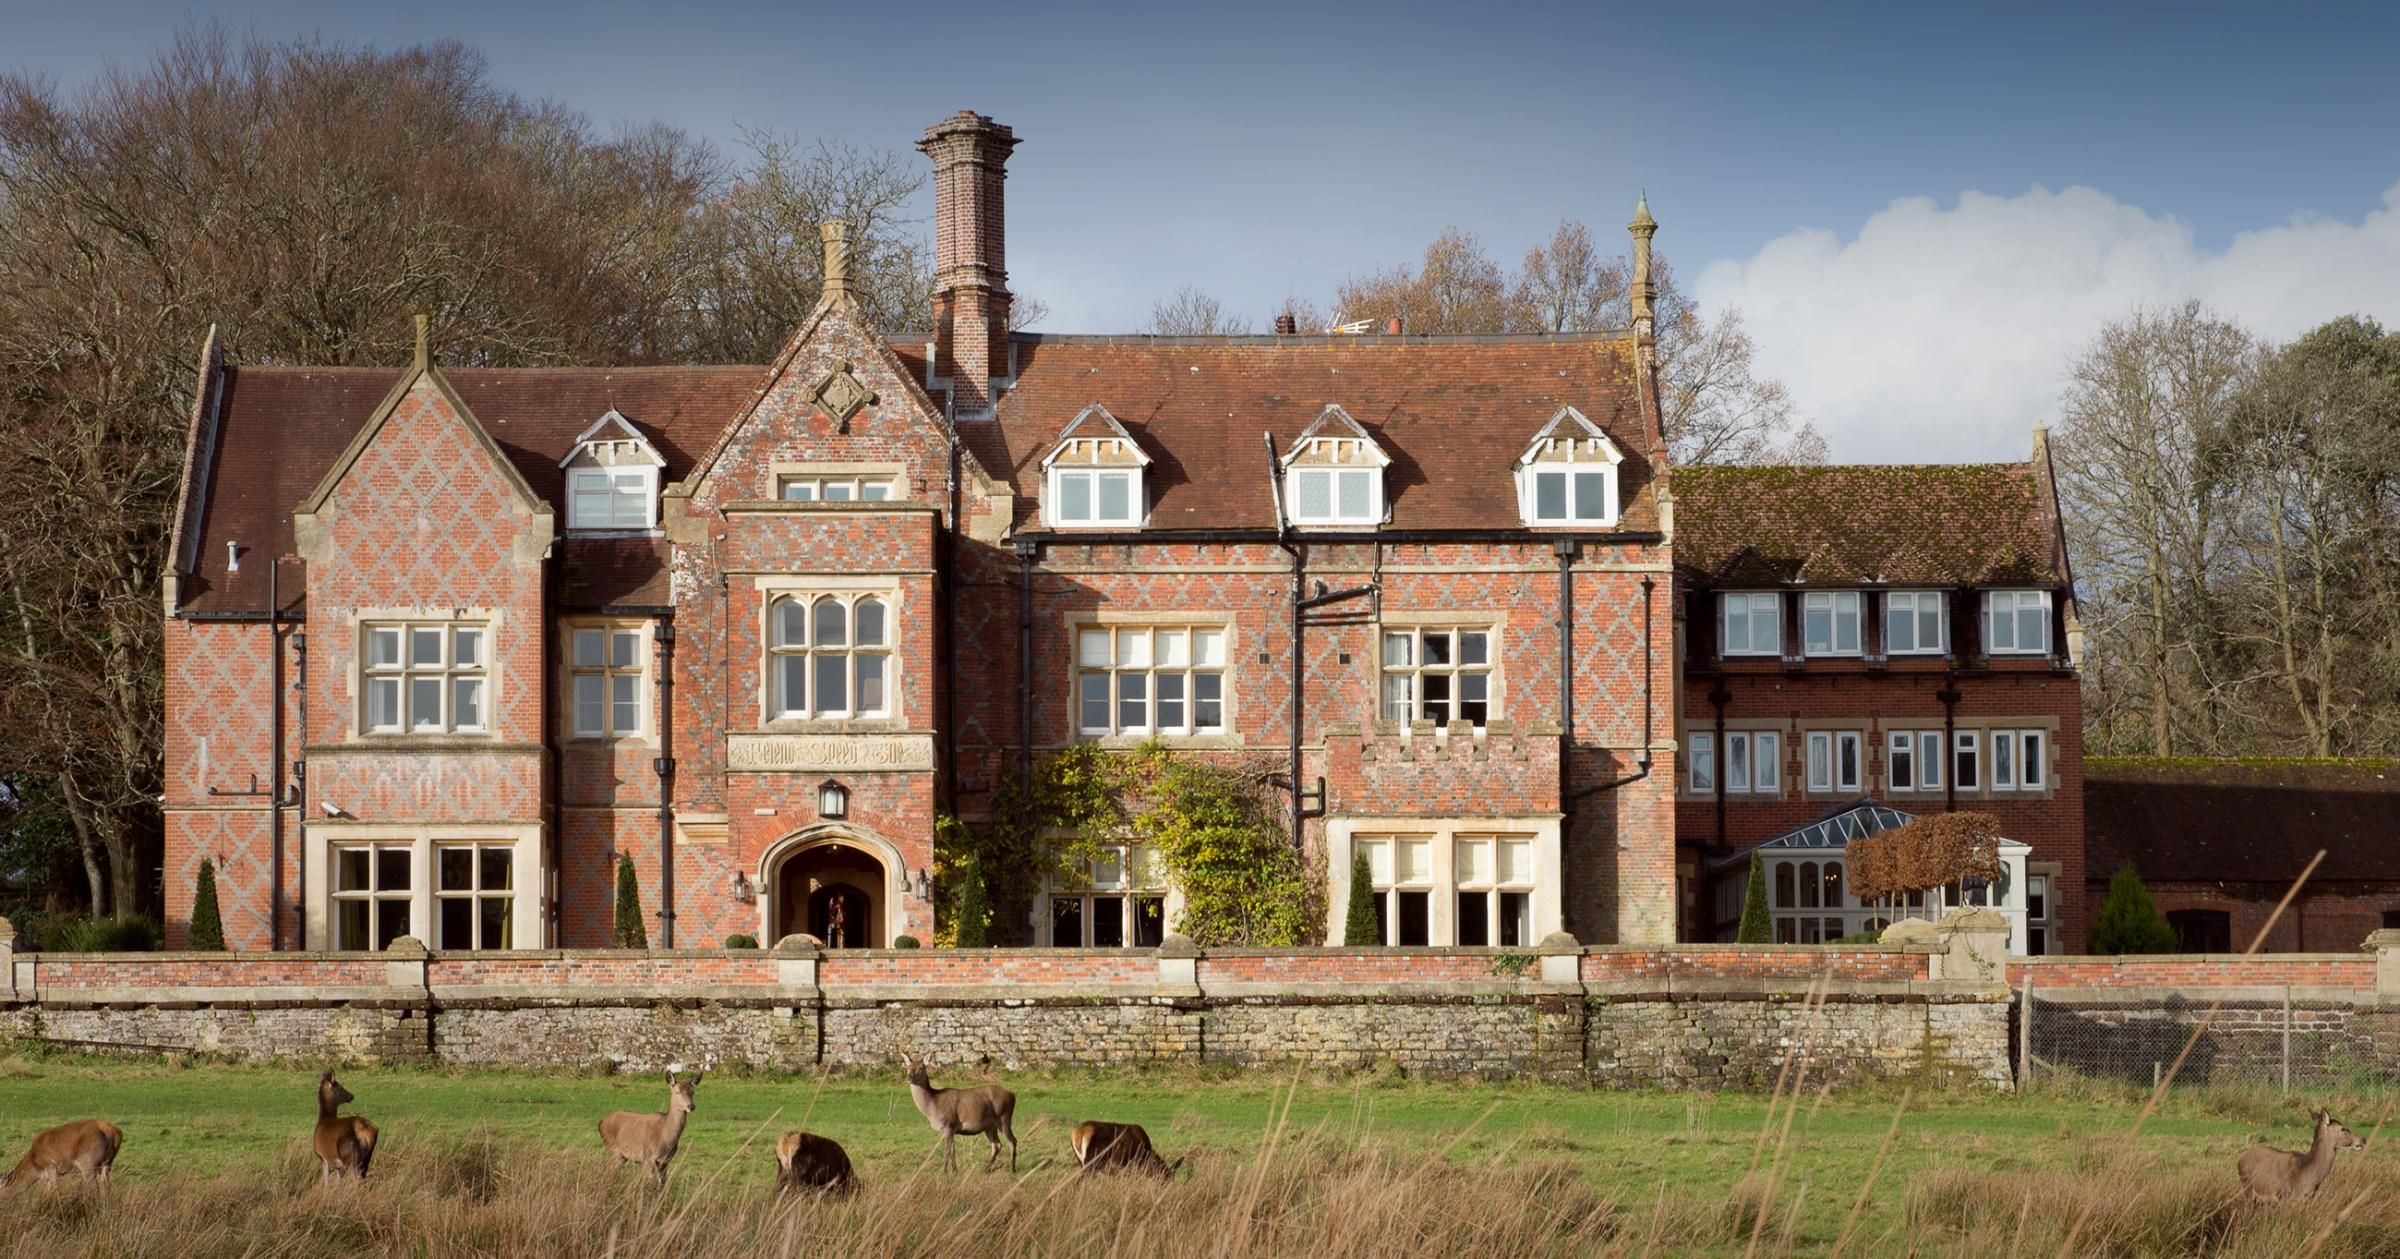 This is a manor house hotel for the 21st century; where old meets bold and there is absolutely no need to whisper.